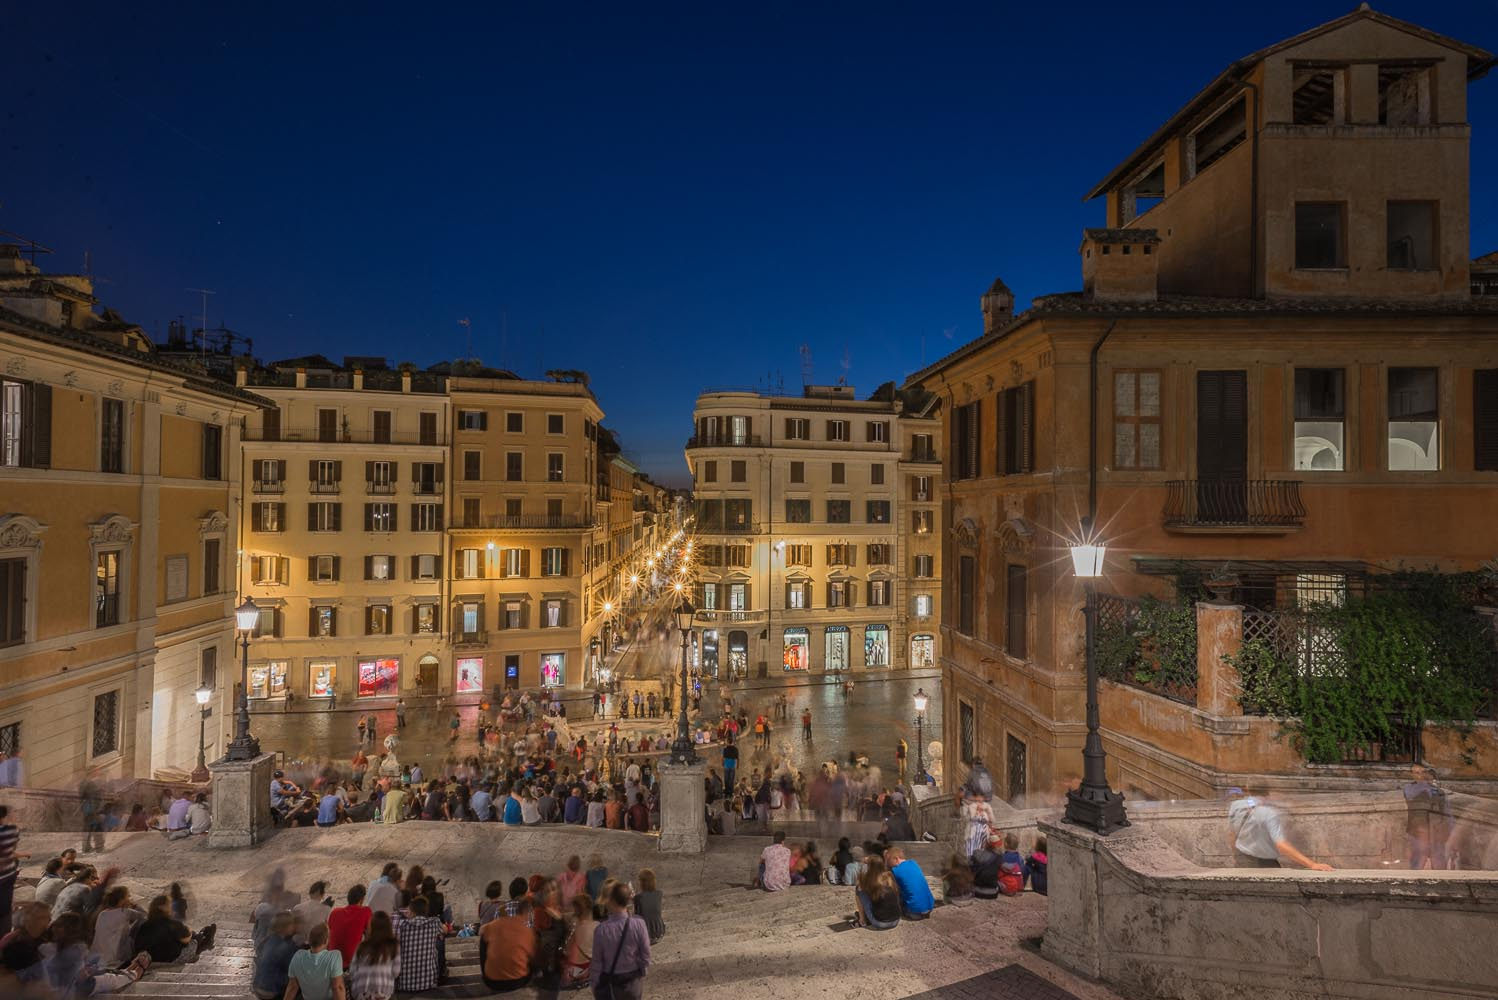 The busy Piazza Spagna at night, Rome, Italy